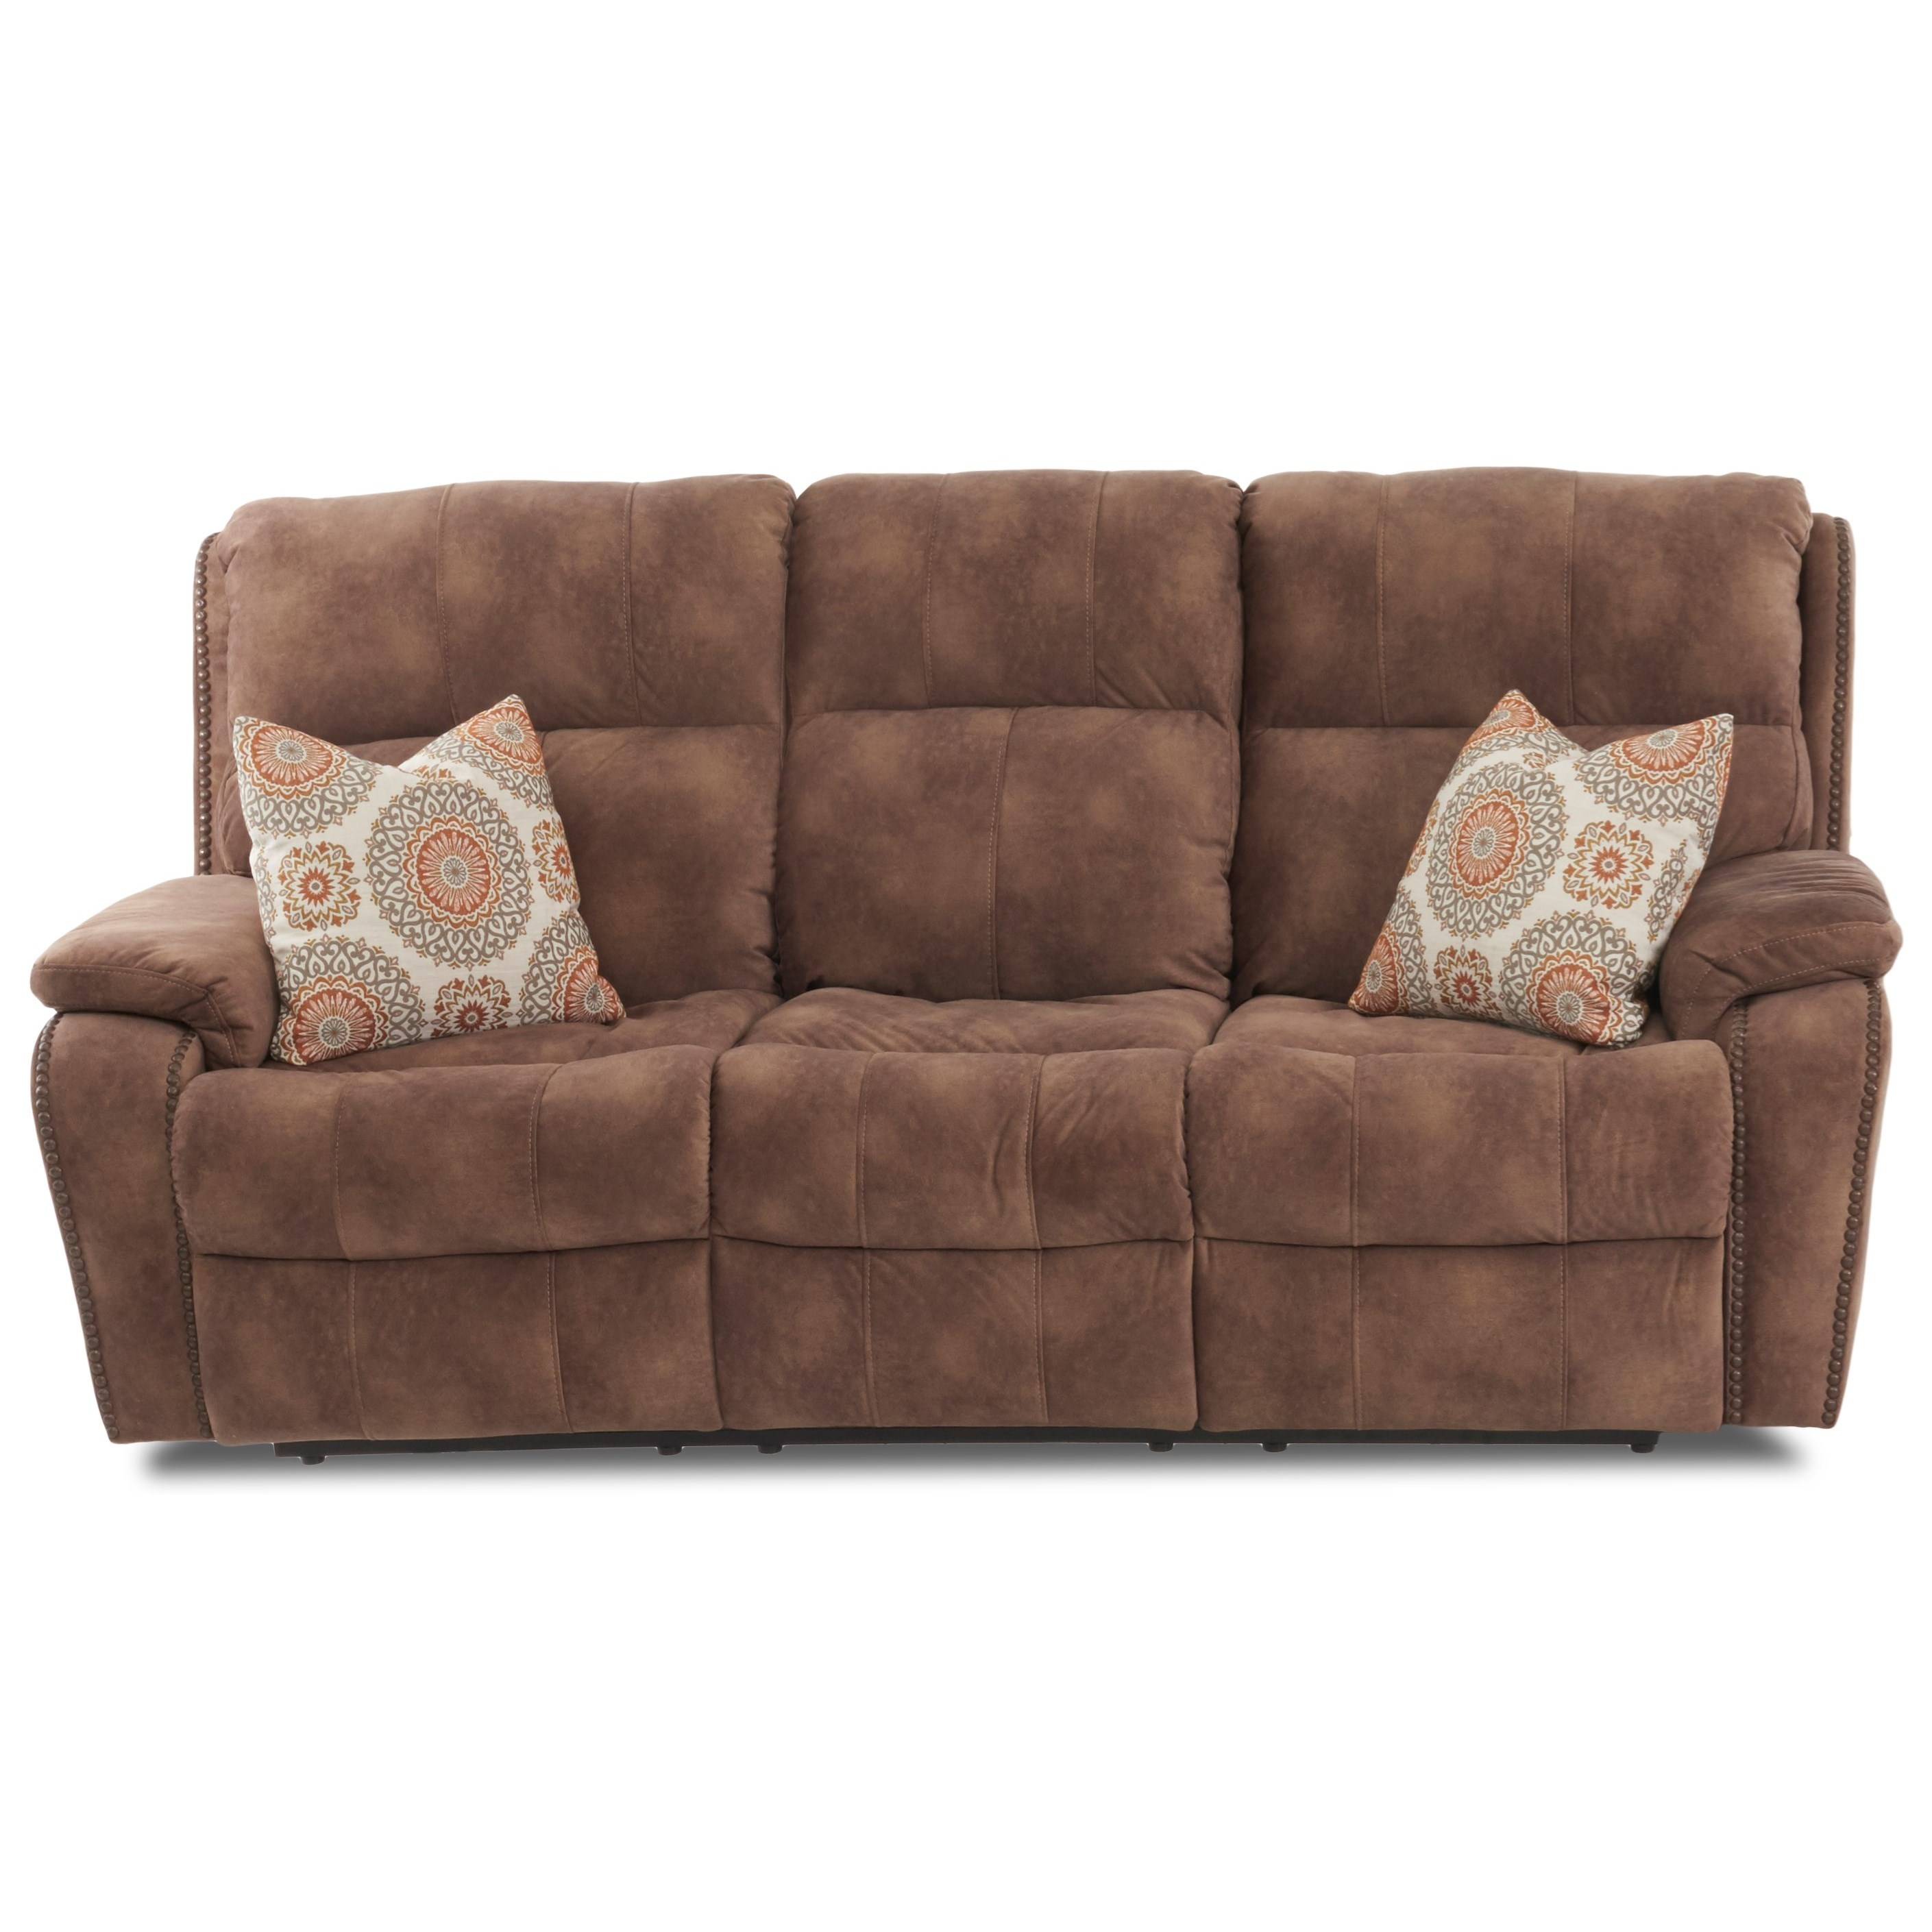 Averett Reclining Sofa w/ Nails & Pillows by Klaussner at H.L. Stephens